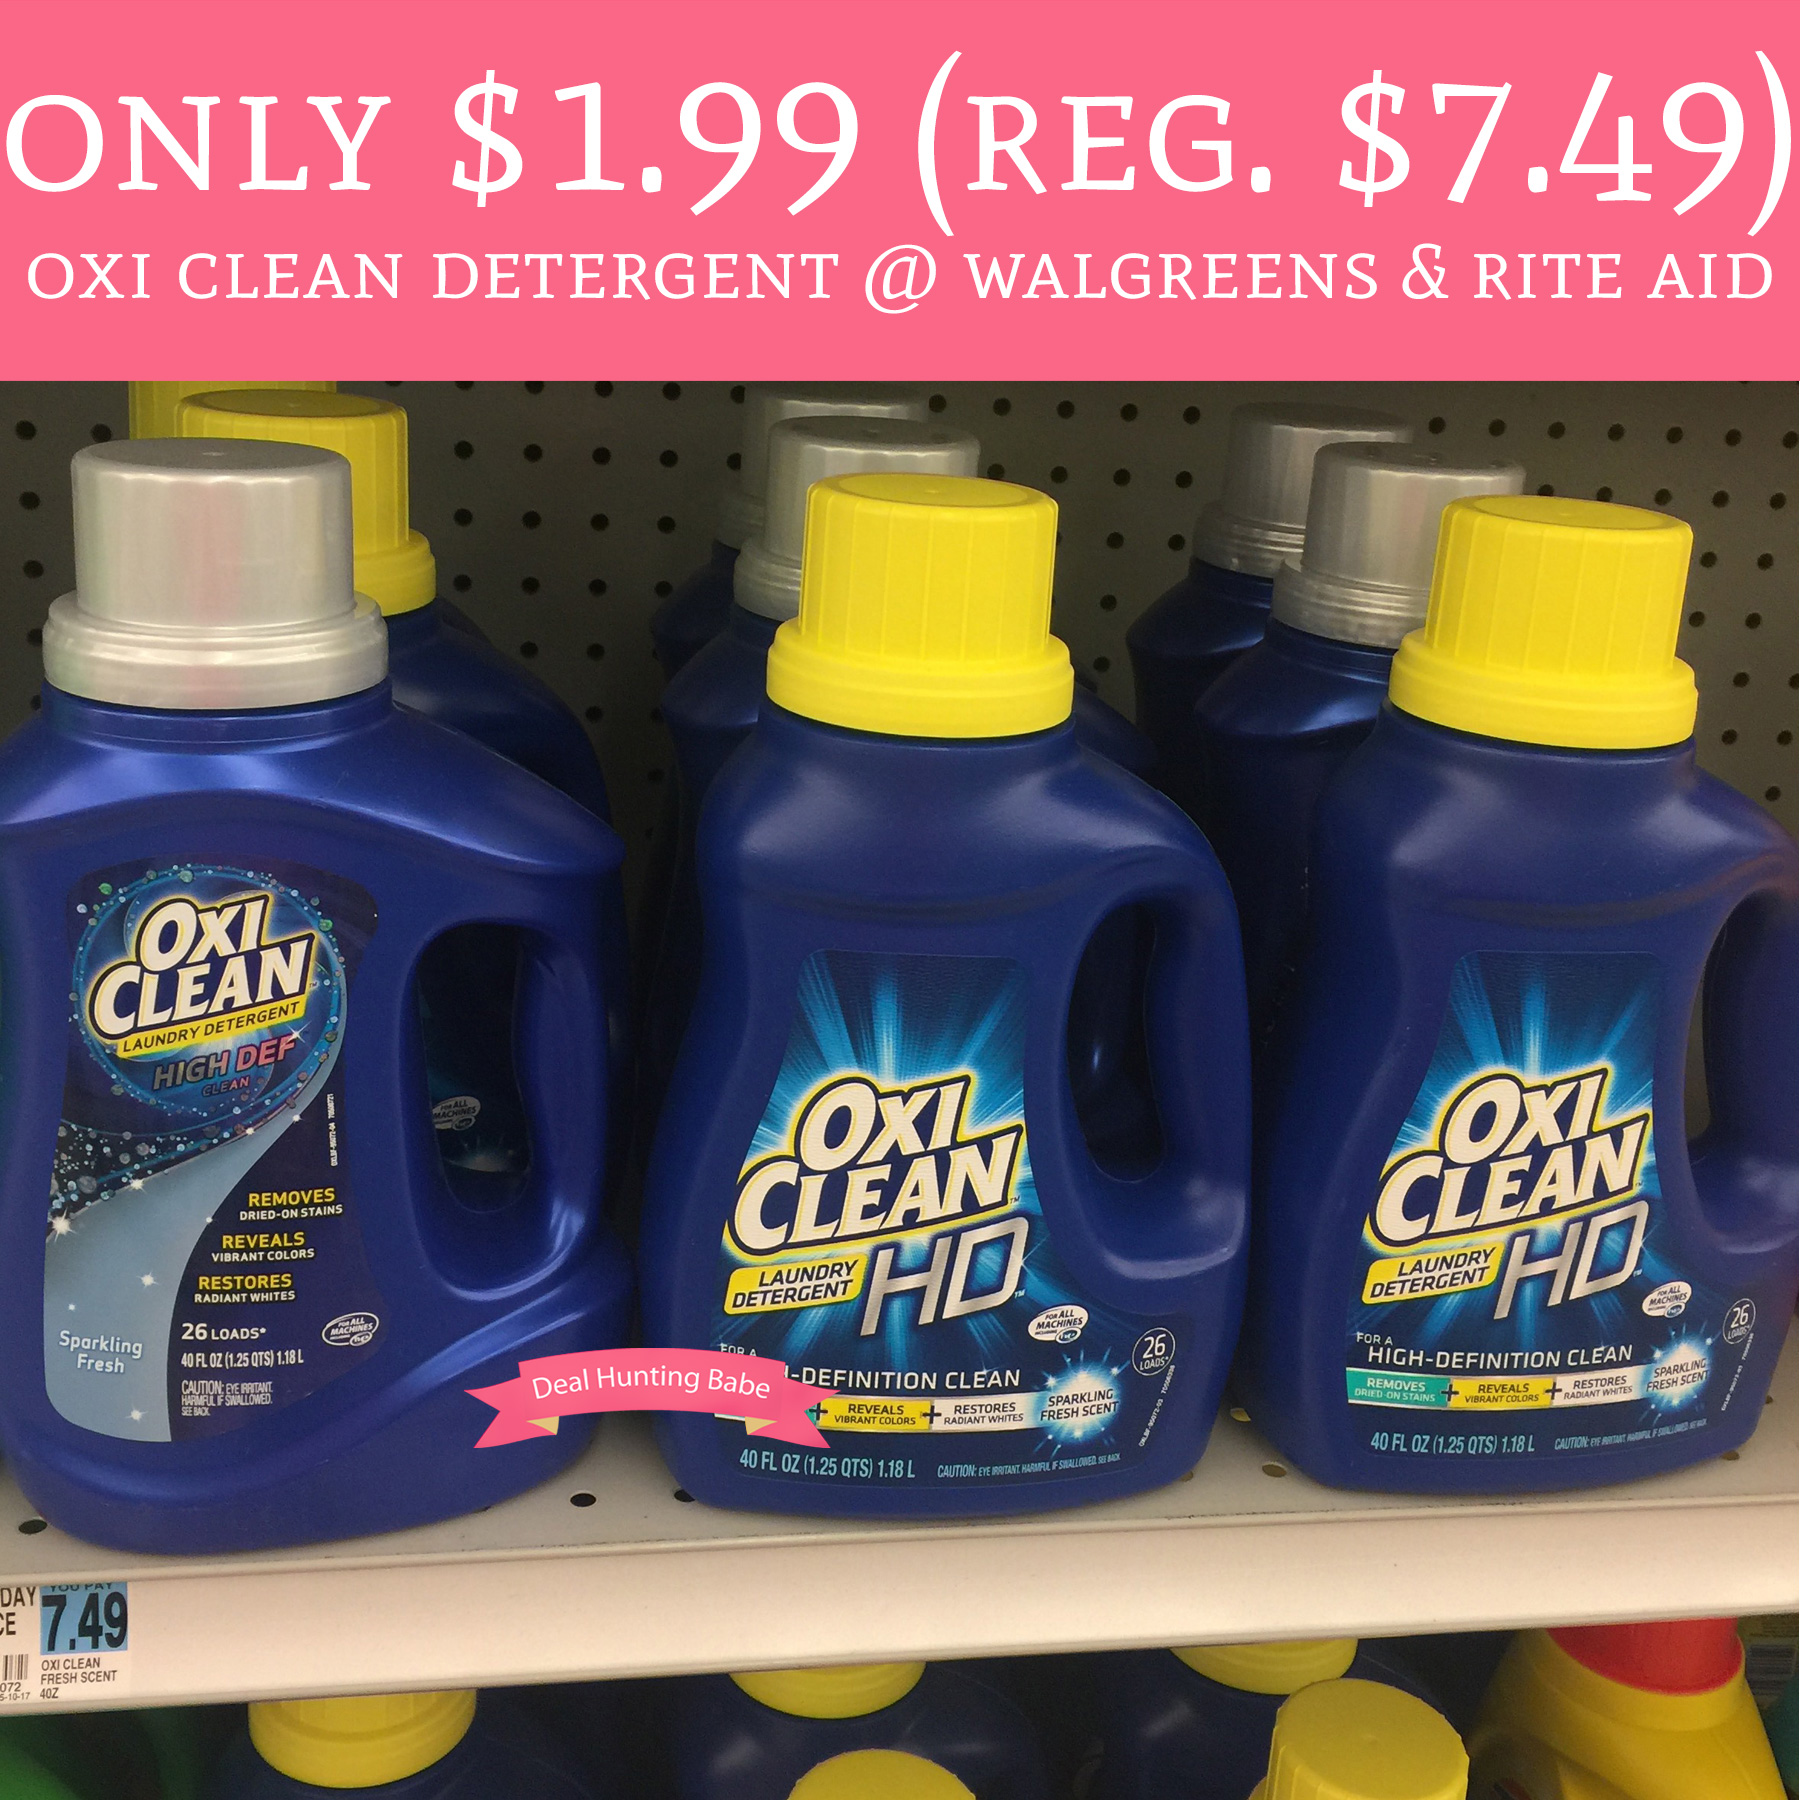 Rite Aid Stock Quote: Only $1.99 (Regular $7.49) Oxi Clean Detergent @ Walgreens